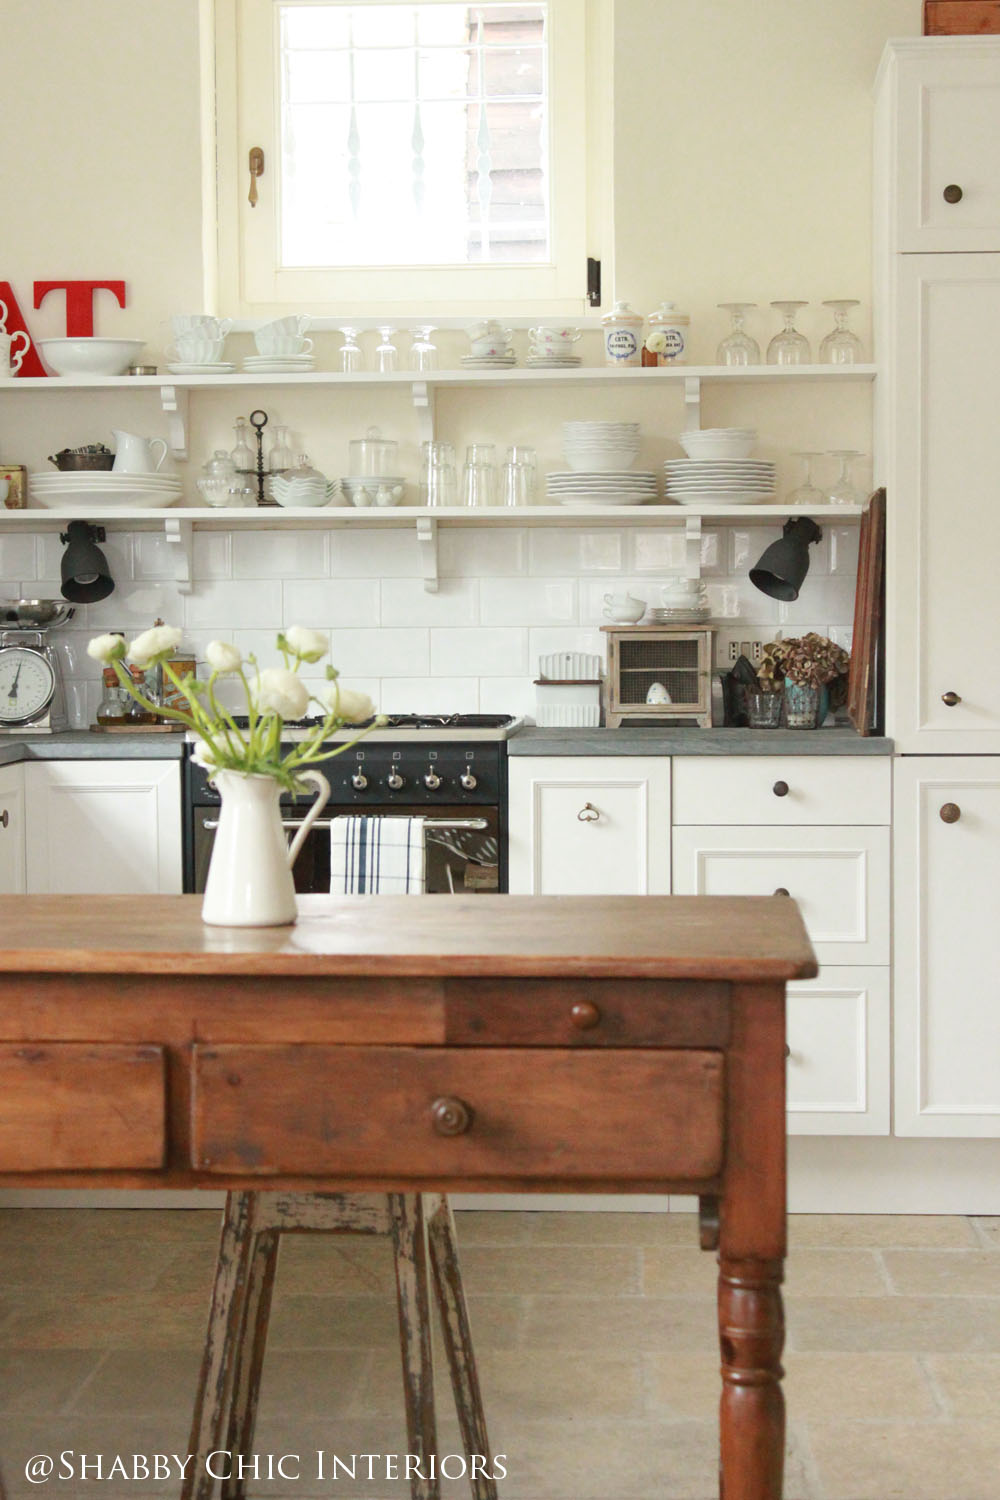 Restyling di una cucina ikea shabby chic interiors for Shabby chic cucina